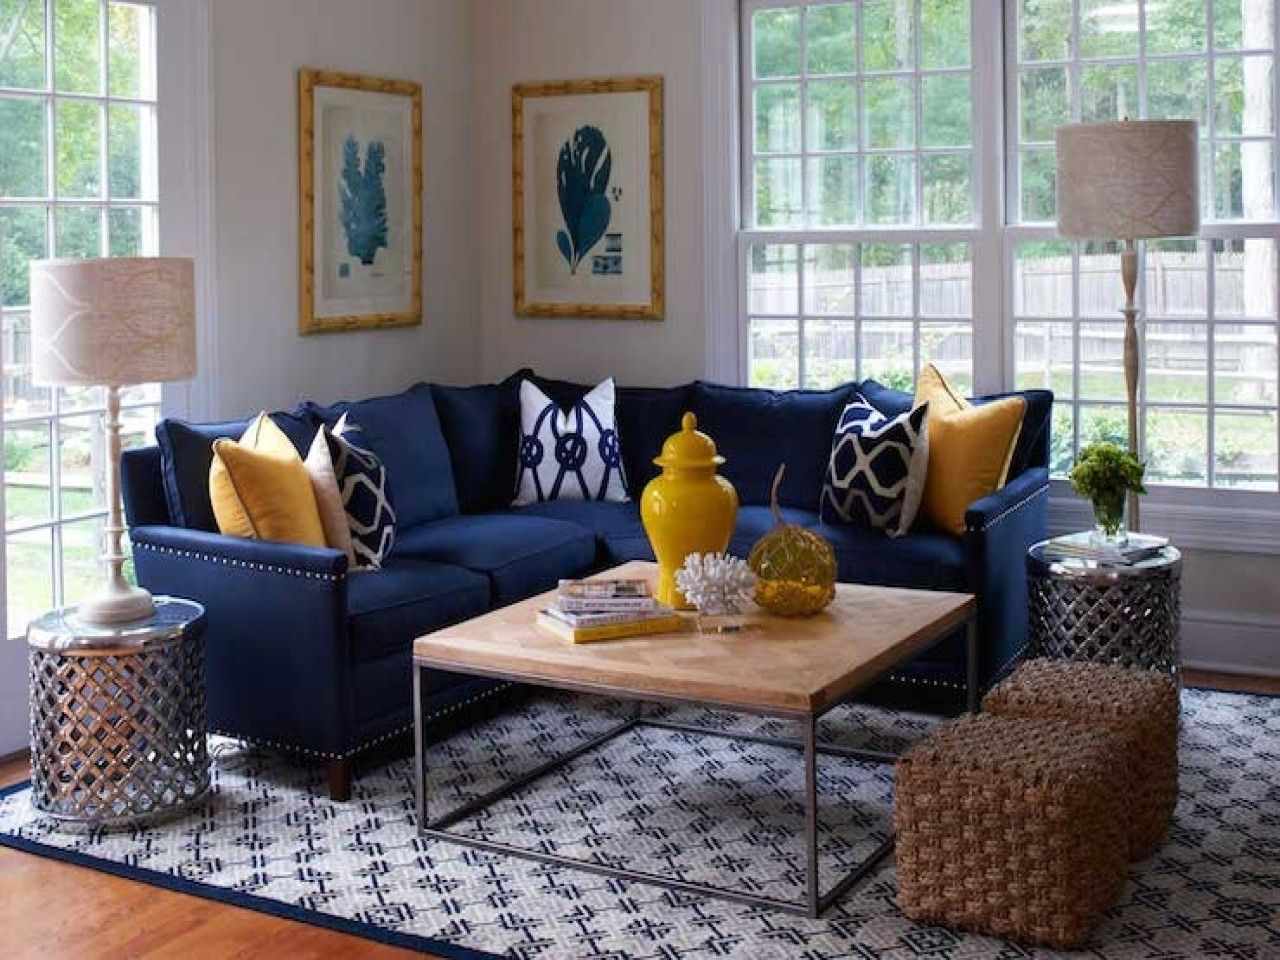 Pin by Melinda C. Banks on Small apartment | Blue couch ...